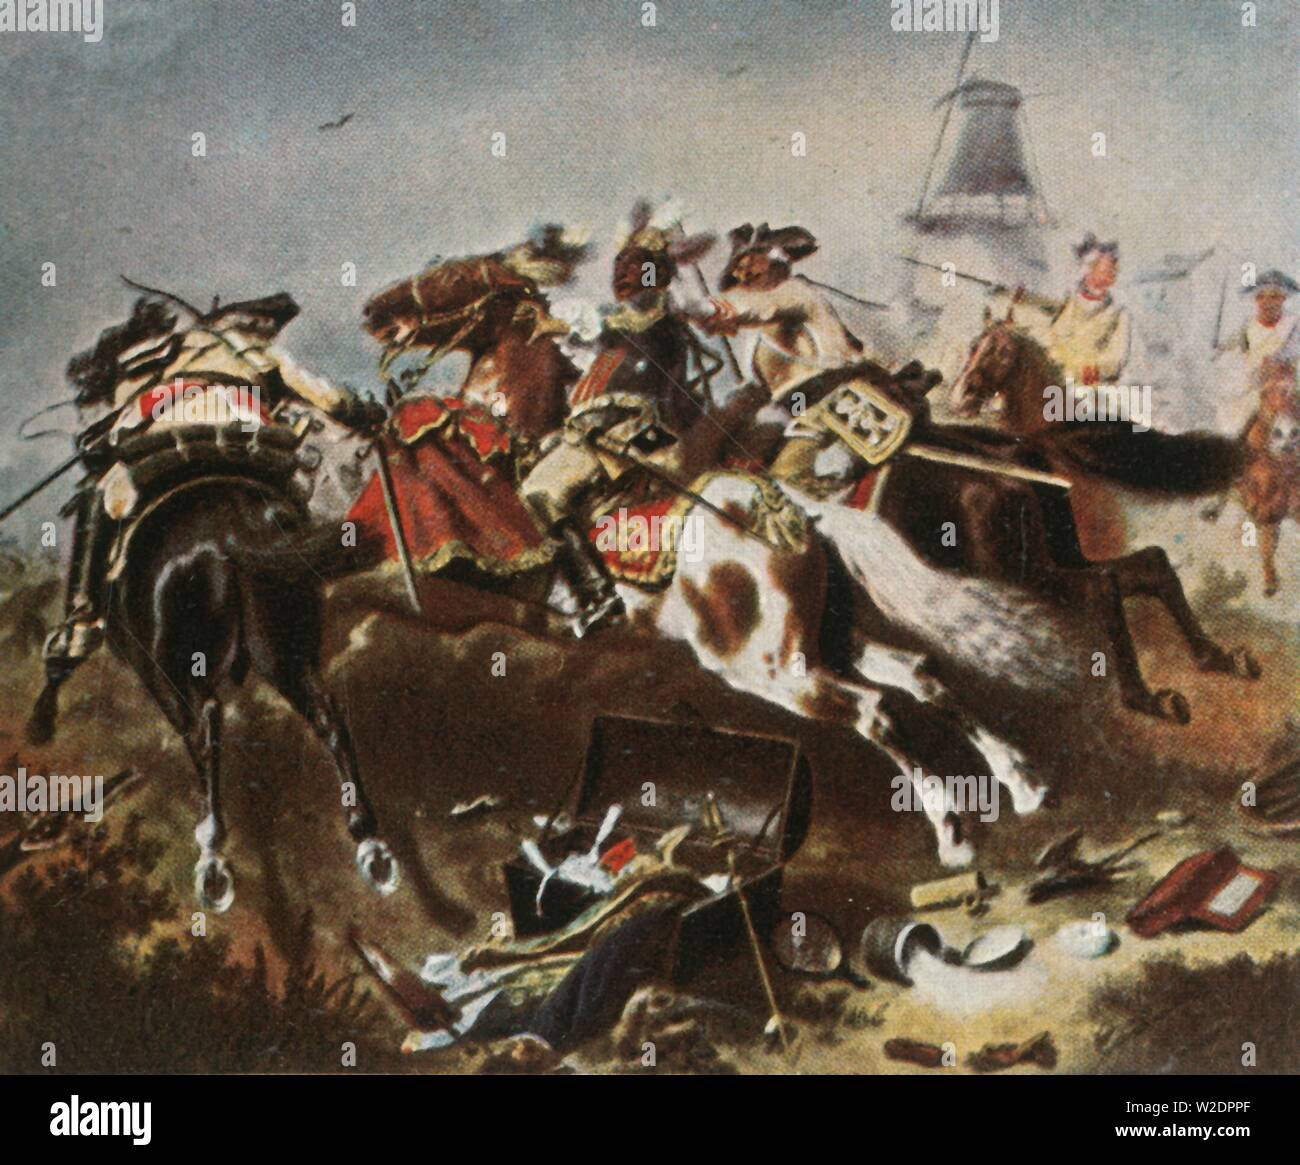 """Cavalry engagement at Rossbach, 5 November 1757, (1936). 'Reiterkampf Bei Rossbach, 5 November 1757'. At the Battle of Rossbach (in Germany), the Prussian cavalry  routed the French and Imperial armies. From """"Bilder Deutscher Geschichte"""", (Pictures of German History), No.12, cigarette card album. [Cigaretten-Bilderdienst, Altona-Bahrenfeld, Hamburg, Germany, 1936] - Stock Image"""